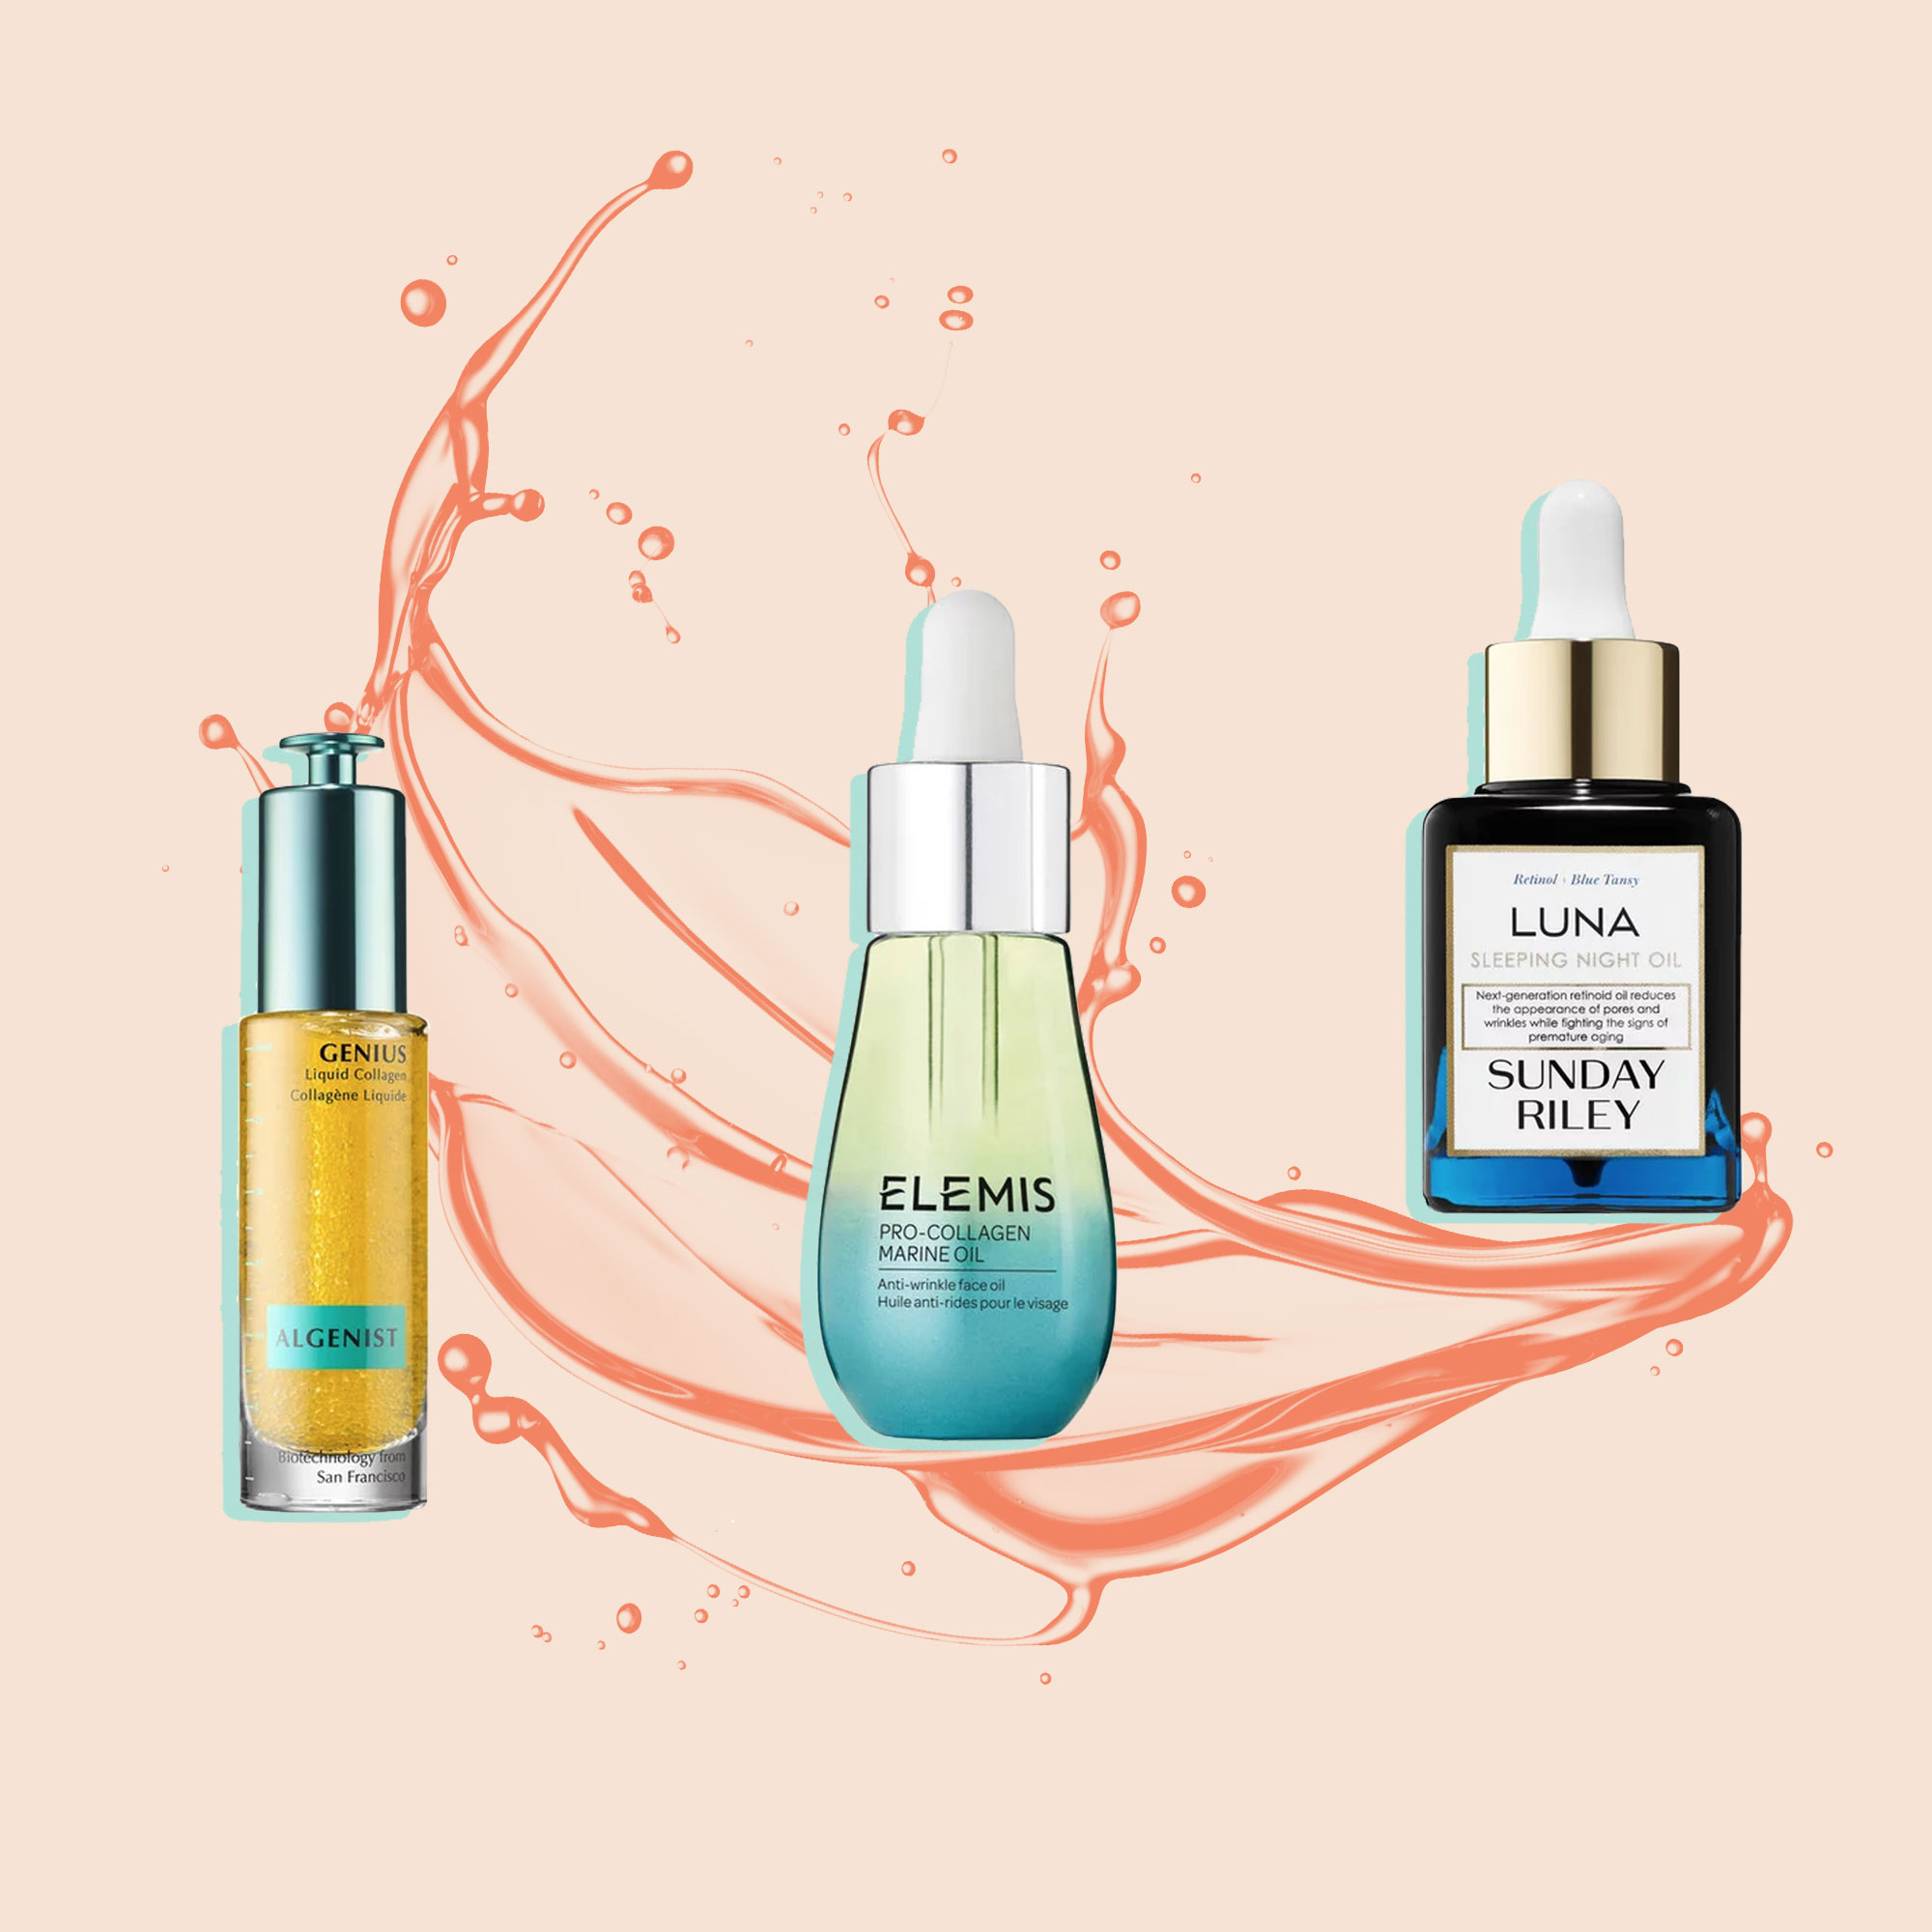 Elemis Pro Collagen Marine Oil anti aging serum 3LAB Anti-Aging Oil  health beauty women woman product Korres Black Pine 3D Sculpting and Firming Sleeping  Algenist Genius Liquid Collagen  Sunday Riley Luna Sleeping Oil  OMOROVICZA Miracle Facial Oil